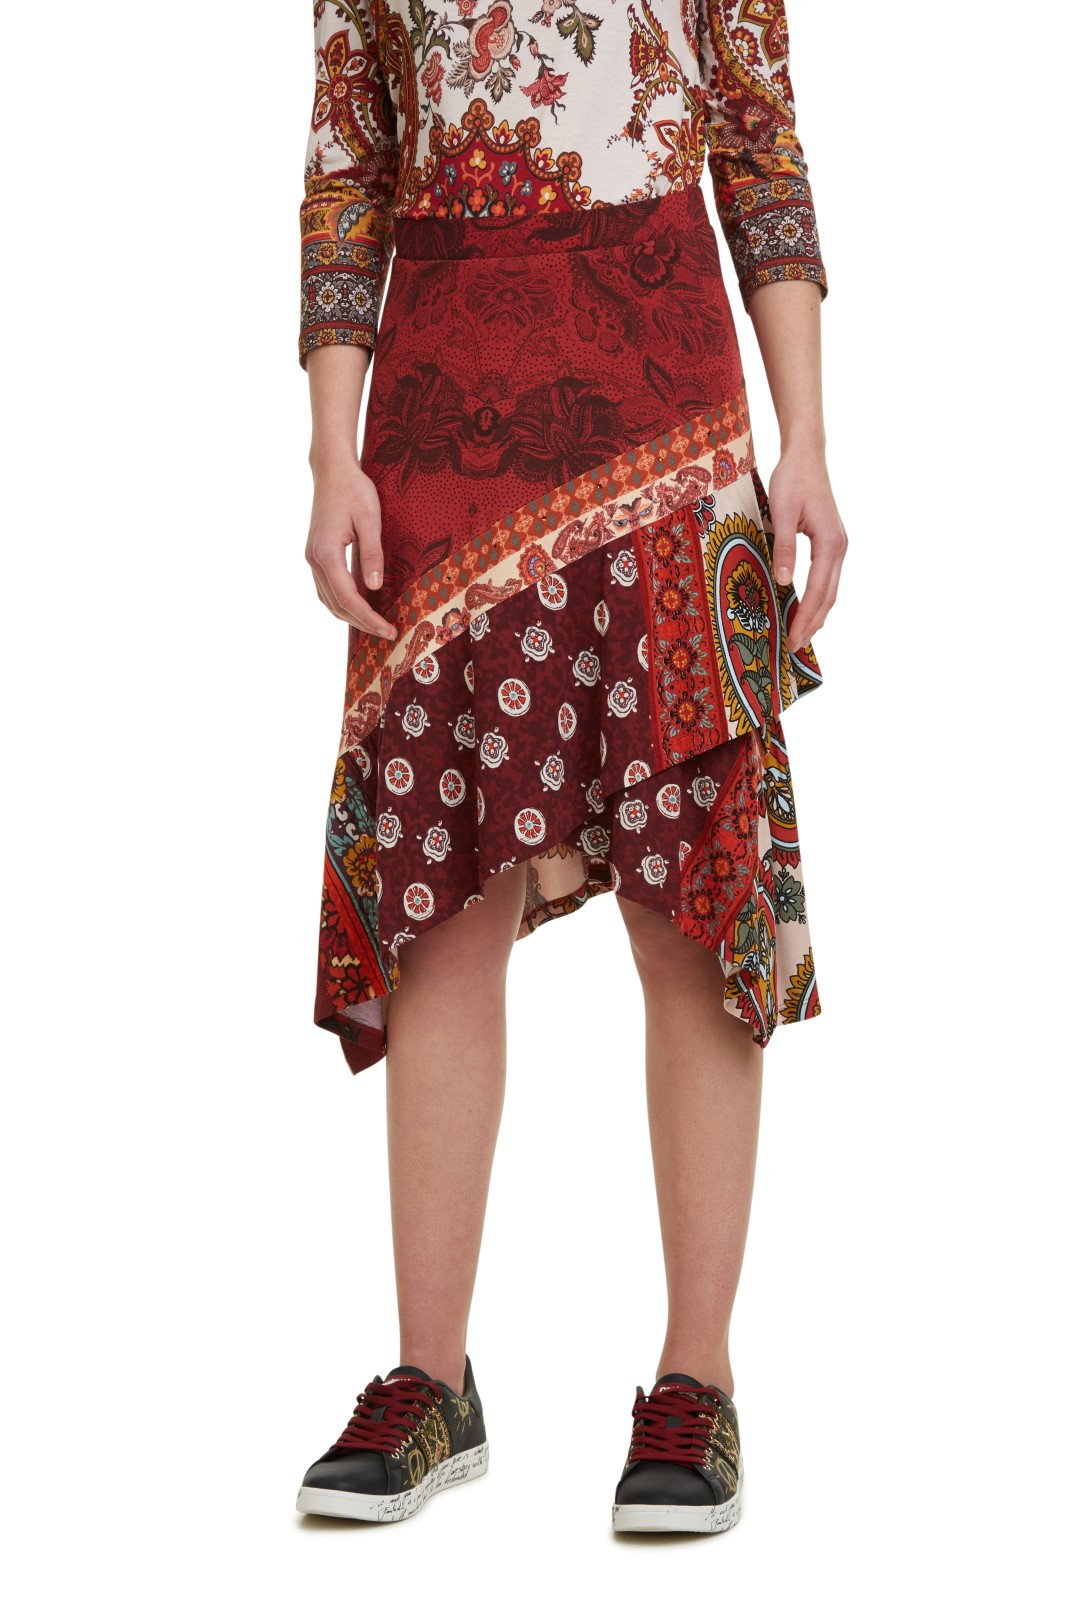 Desigual red skirt Fal Indira with colorful motifs